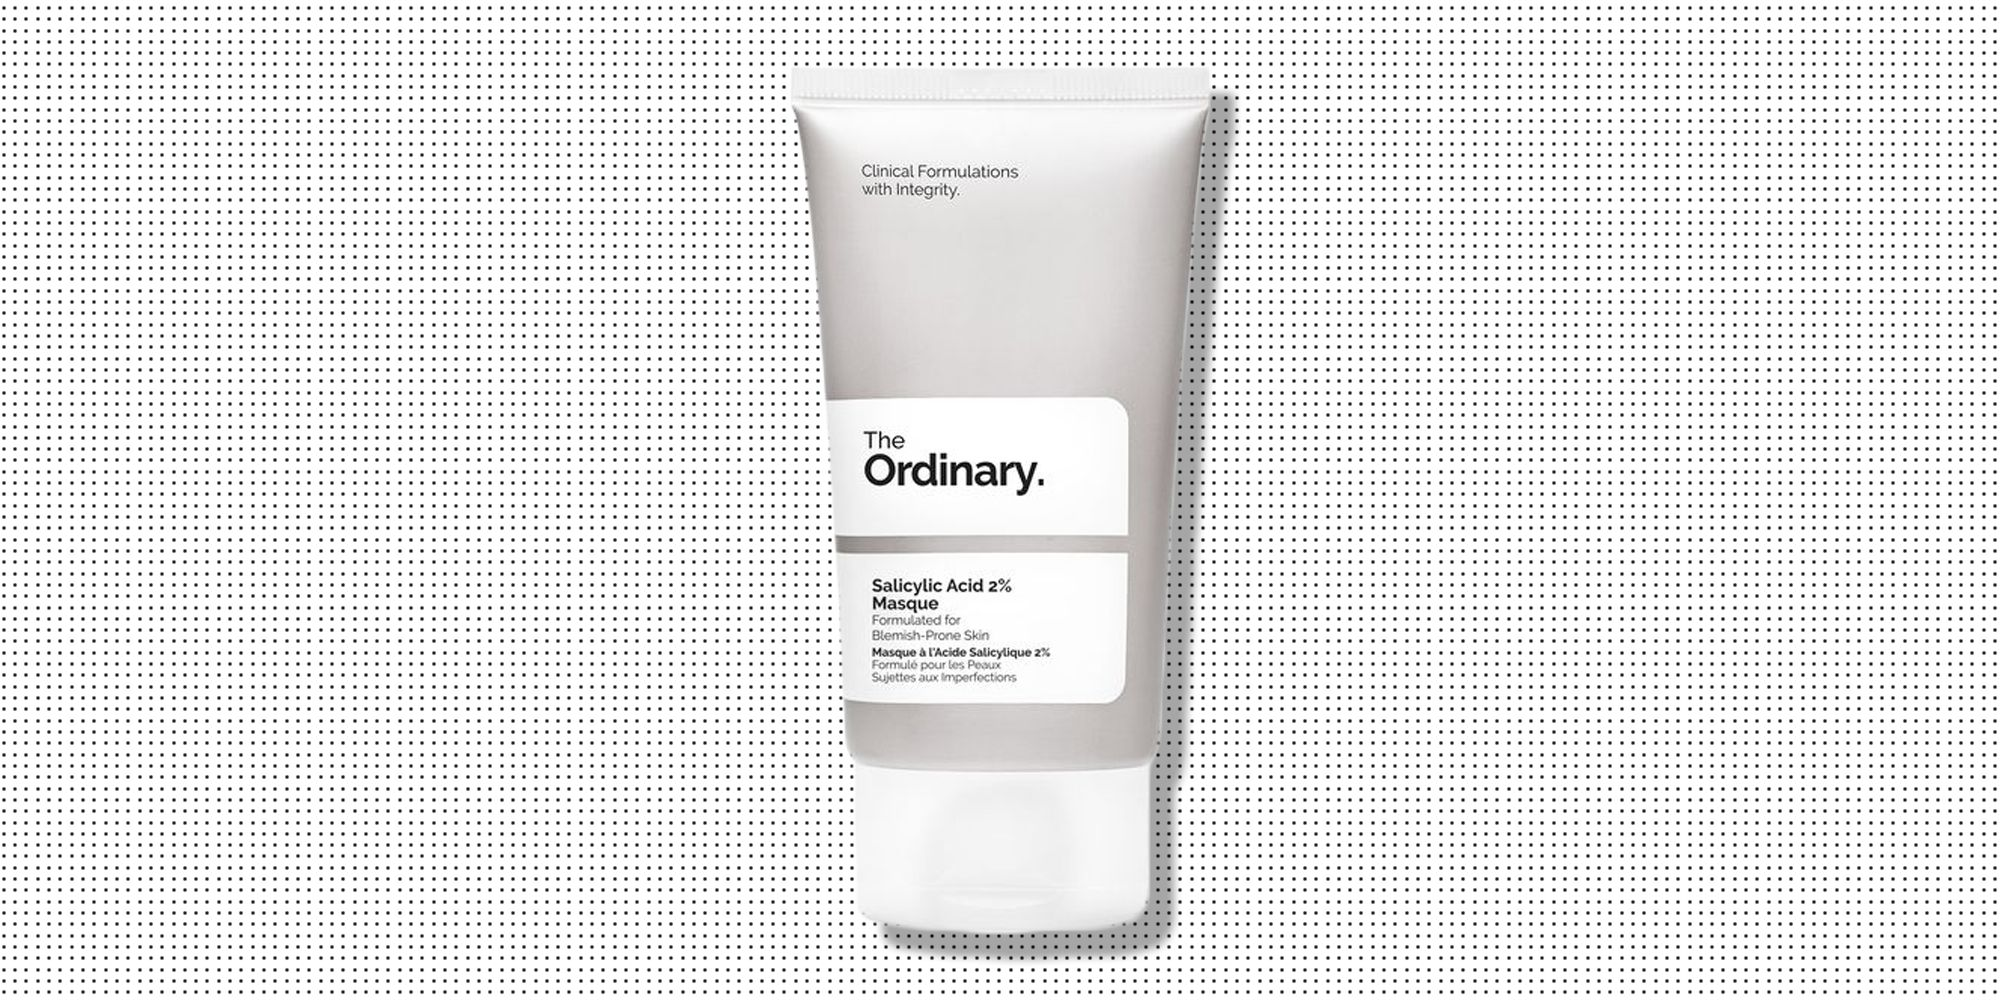 The Ordinary Is Launching A Brand New Face Mask